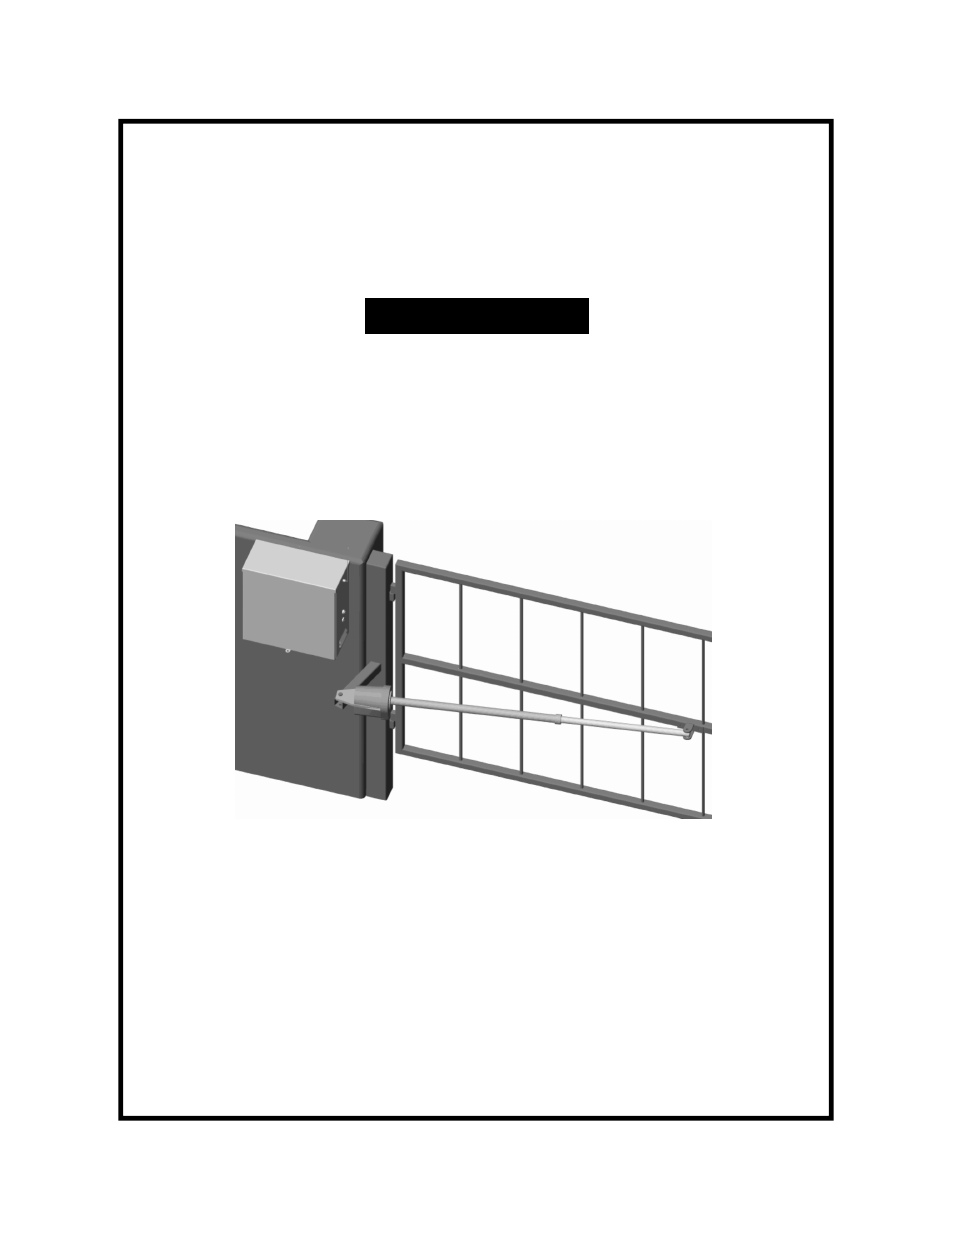 Apollo Swing Gate Operator 1600 User Manual 17 Pages